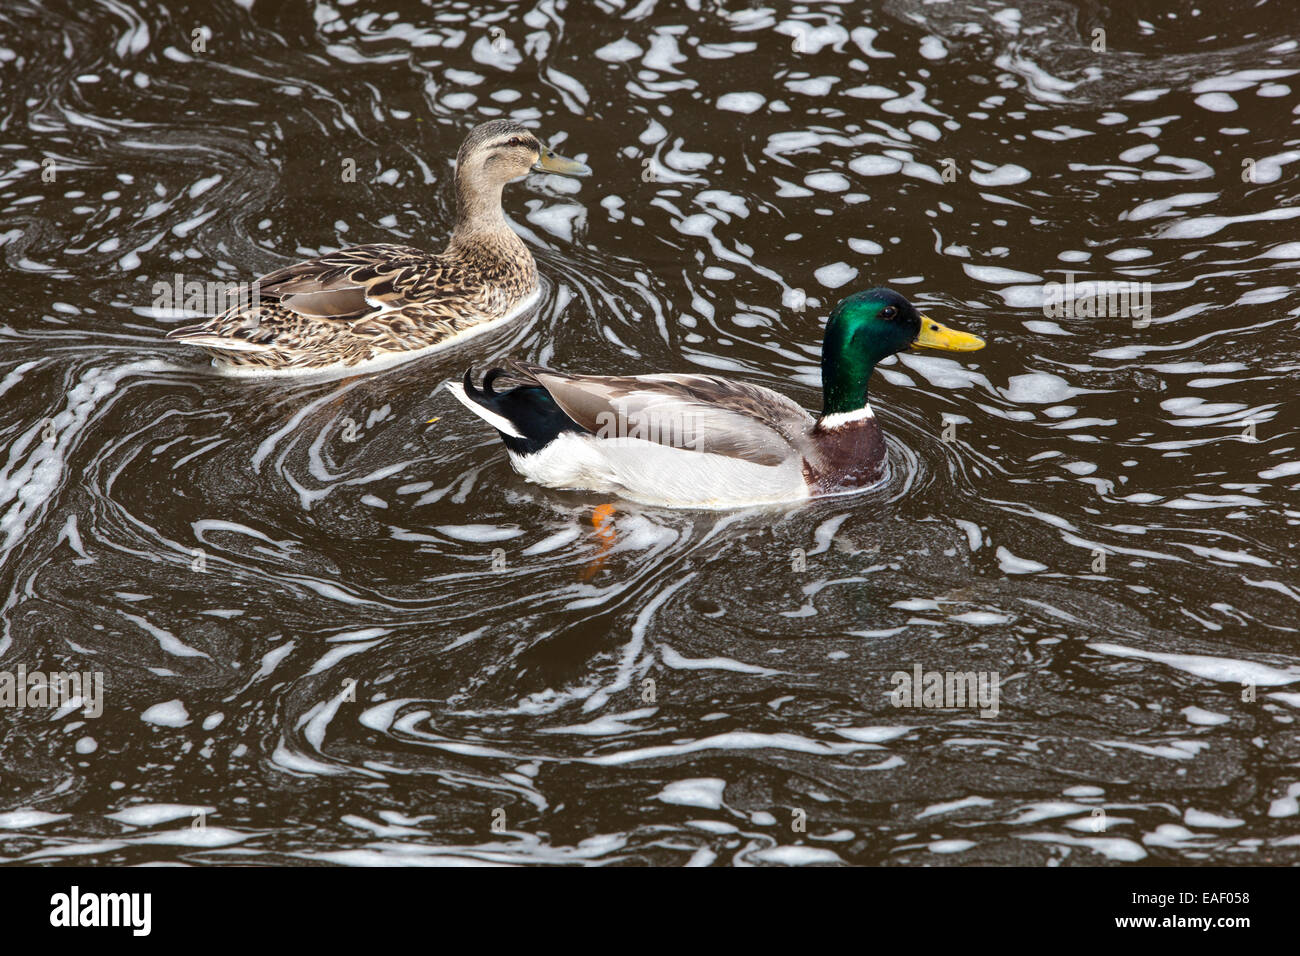 Mallard duck in the foaming river, polluted river - Stock Image